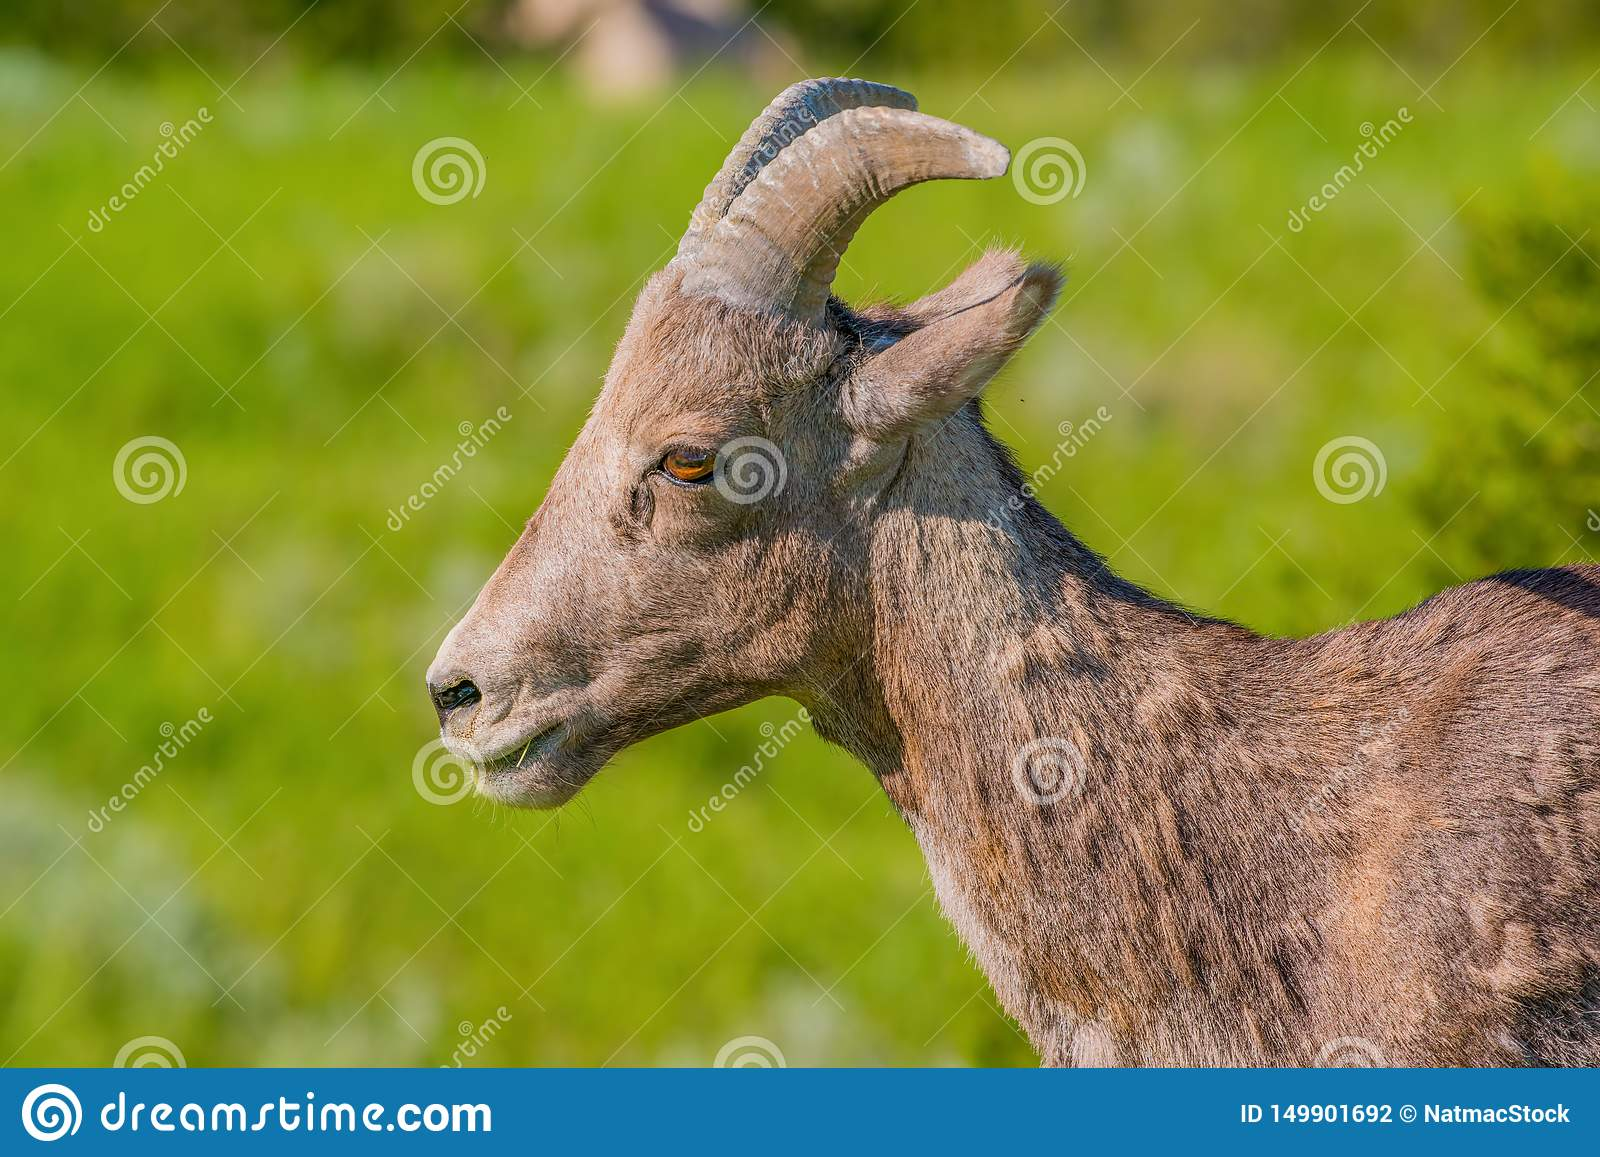 Closeup portrait of bighorn sheep in a hilly area of the Badlands National Park